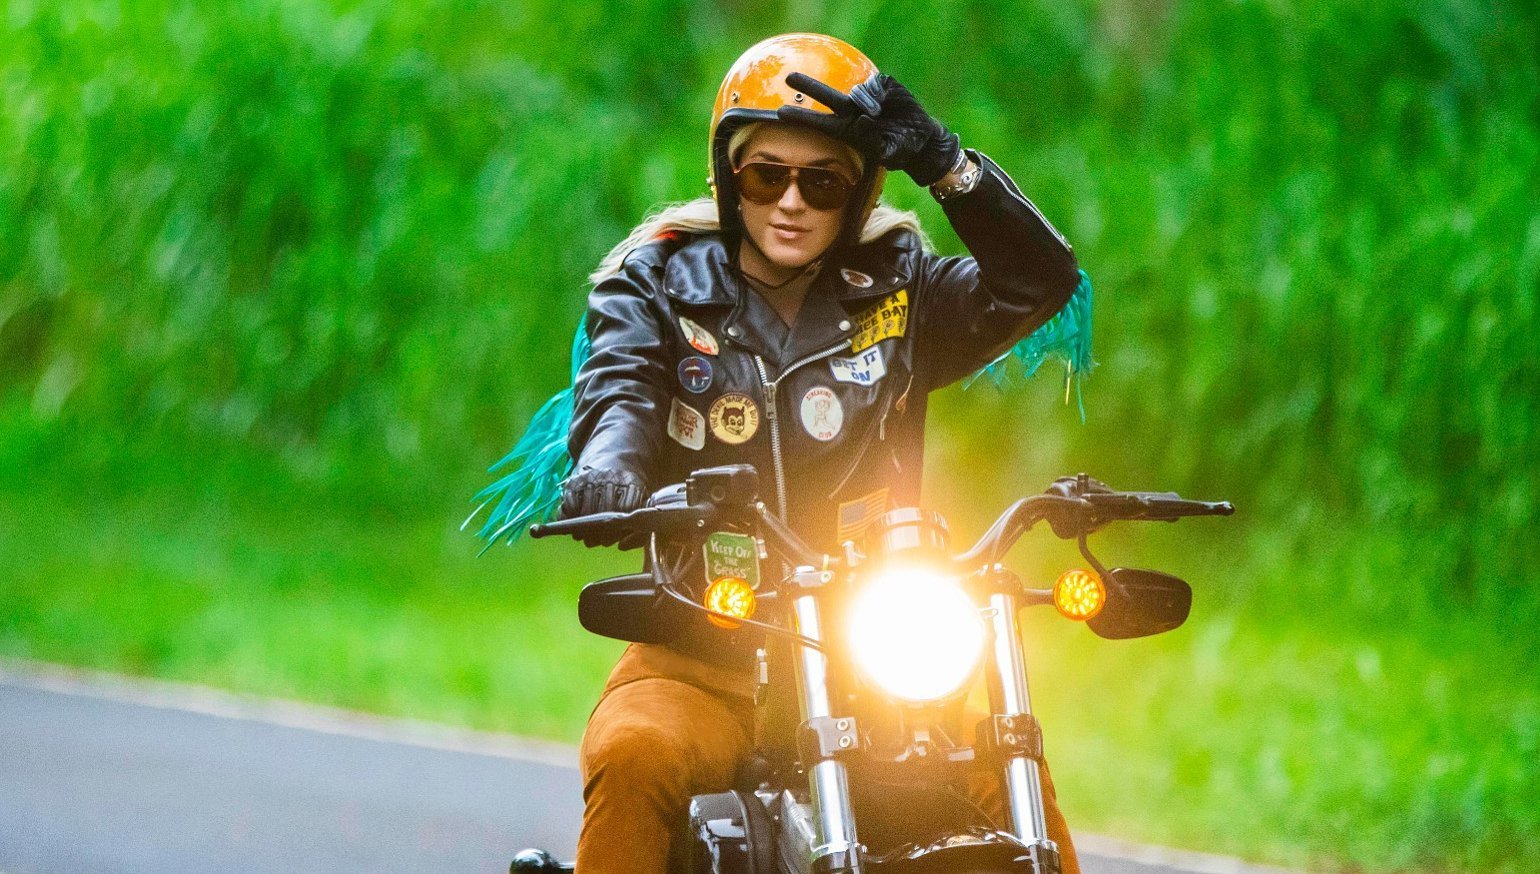 Katy Perry delivers Harley-Davidson's dream ad campaign, for free